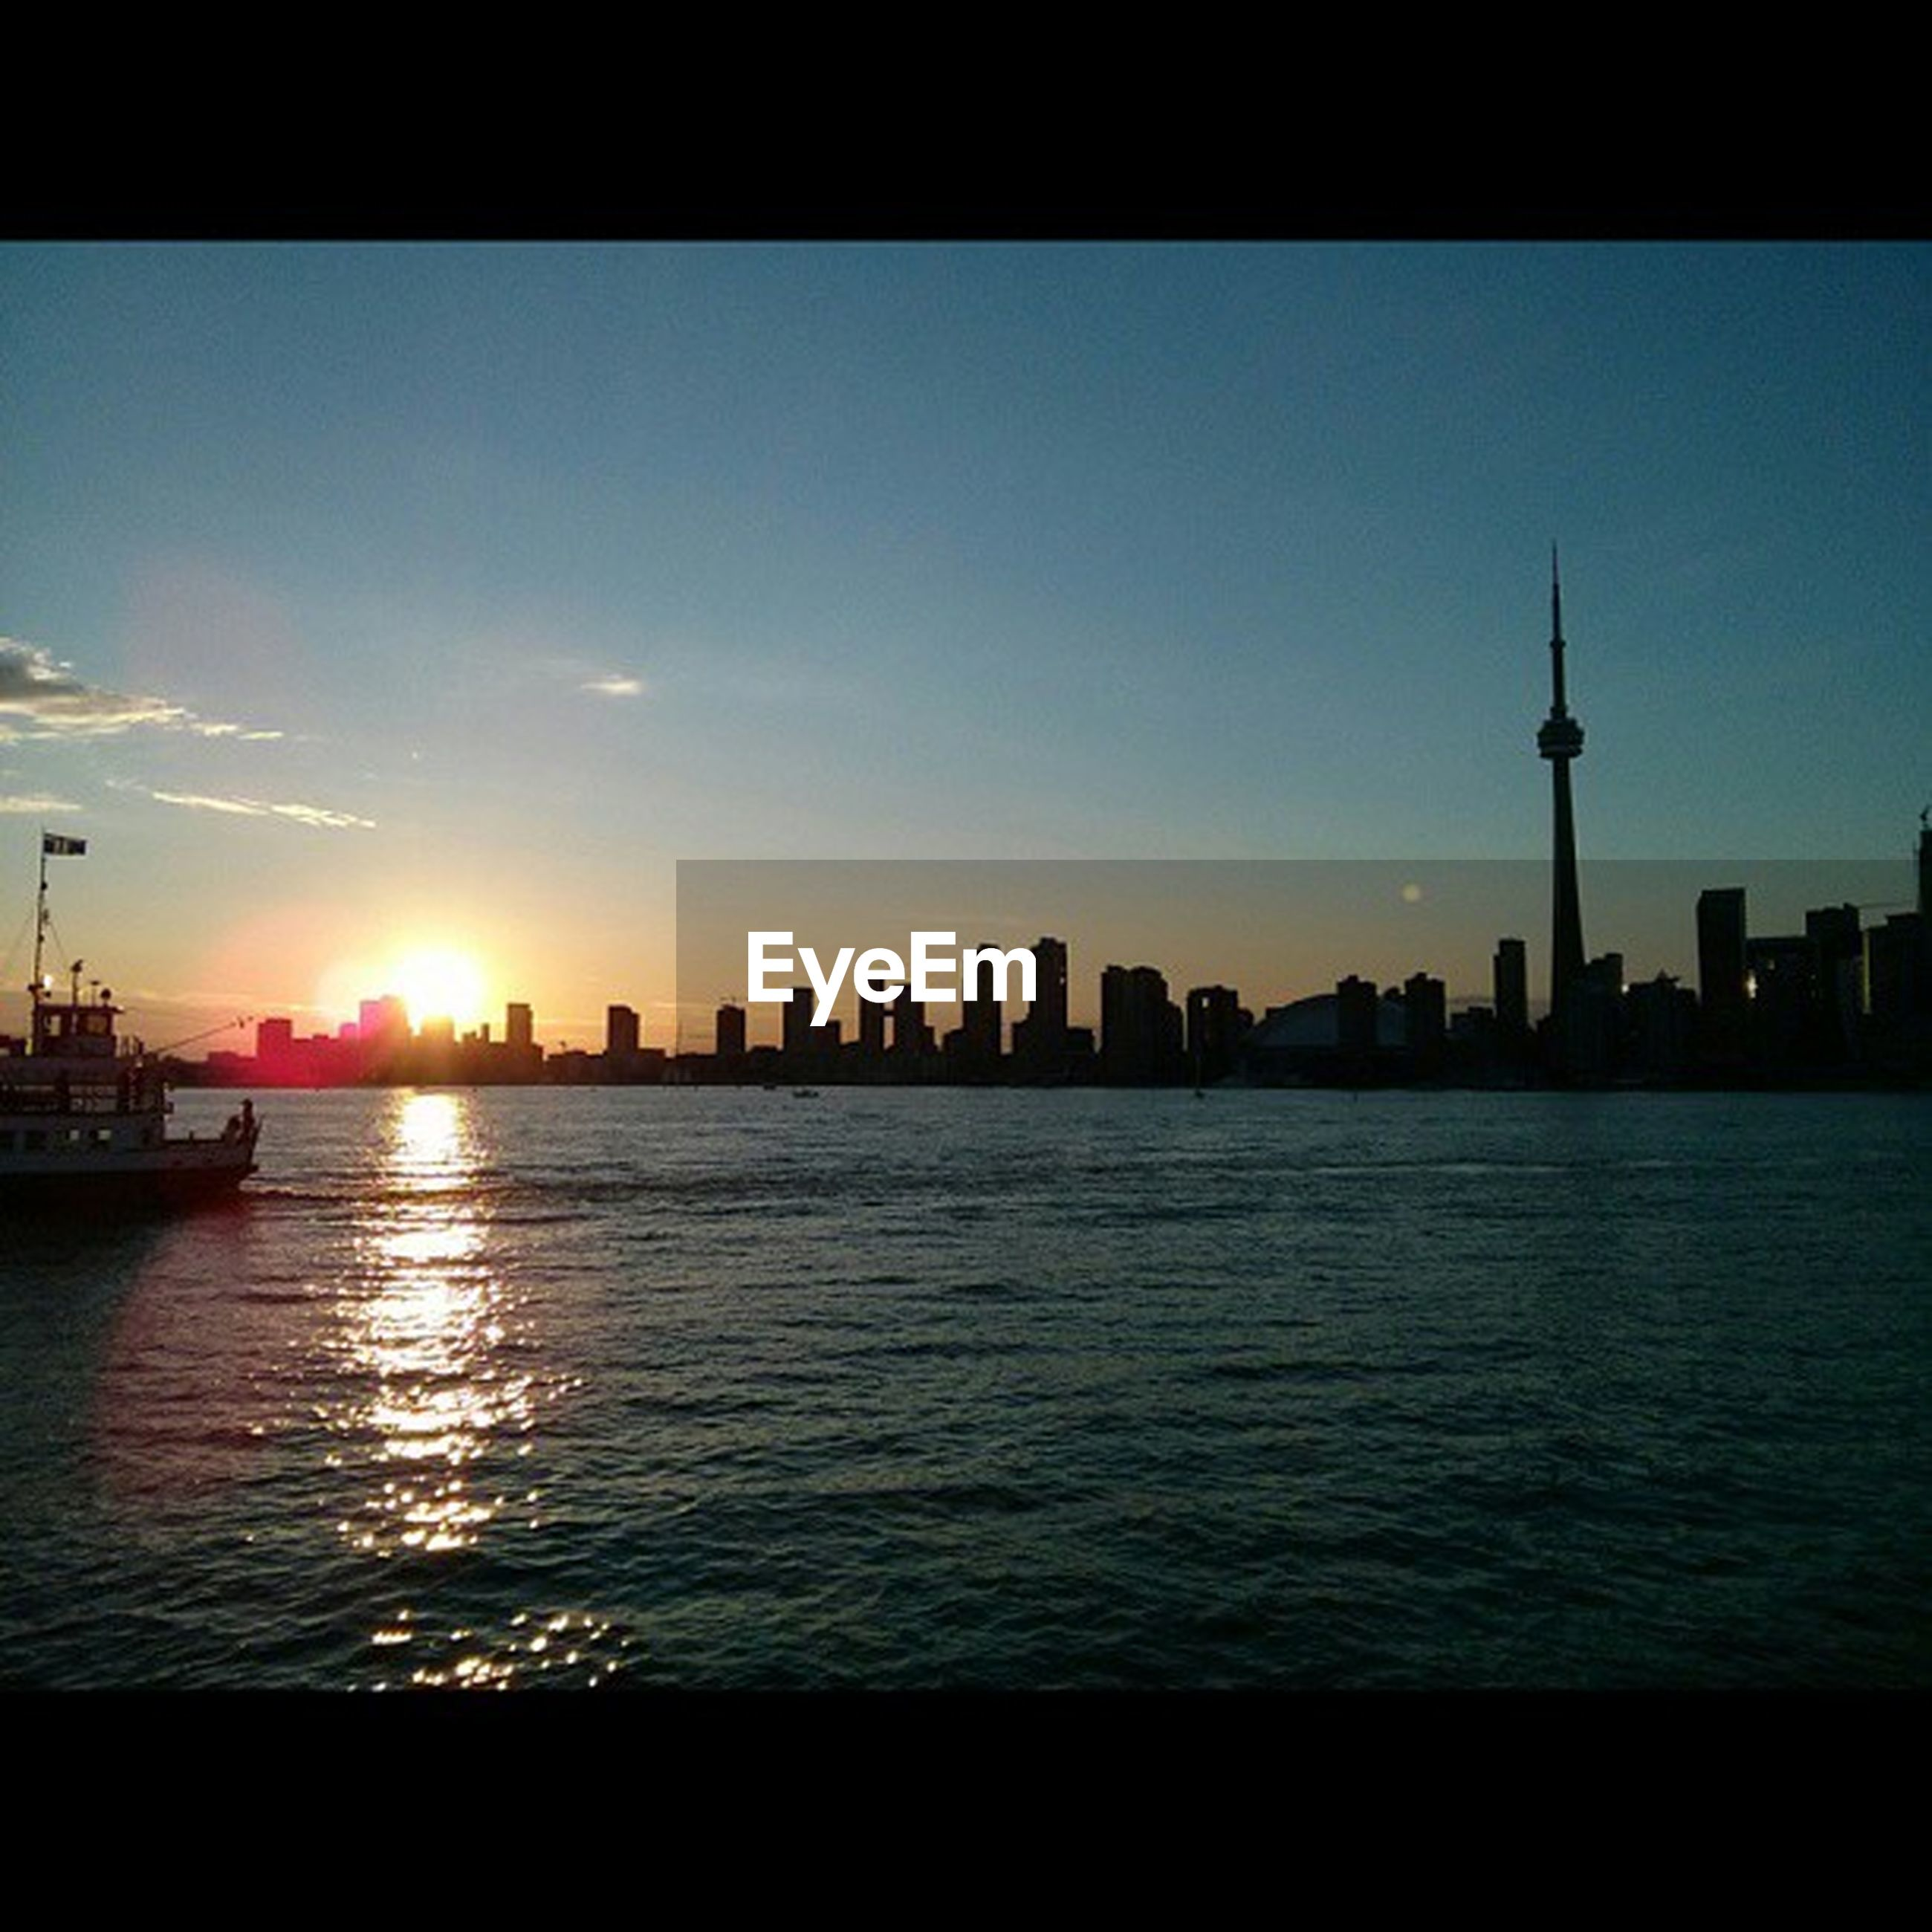 sunset, building exterior, architecture, water, built structure, city, tower, silhouette, sea, cityscape, sky, waterfront, urban skyline, skyscraper, river, tall - high, sun, communications tower, travel destinations, skyline